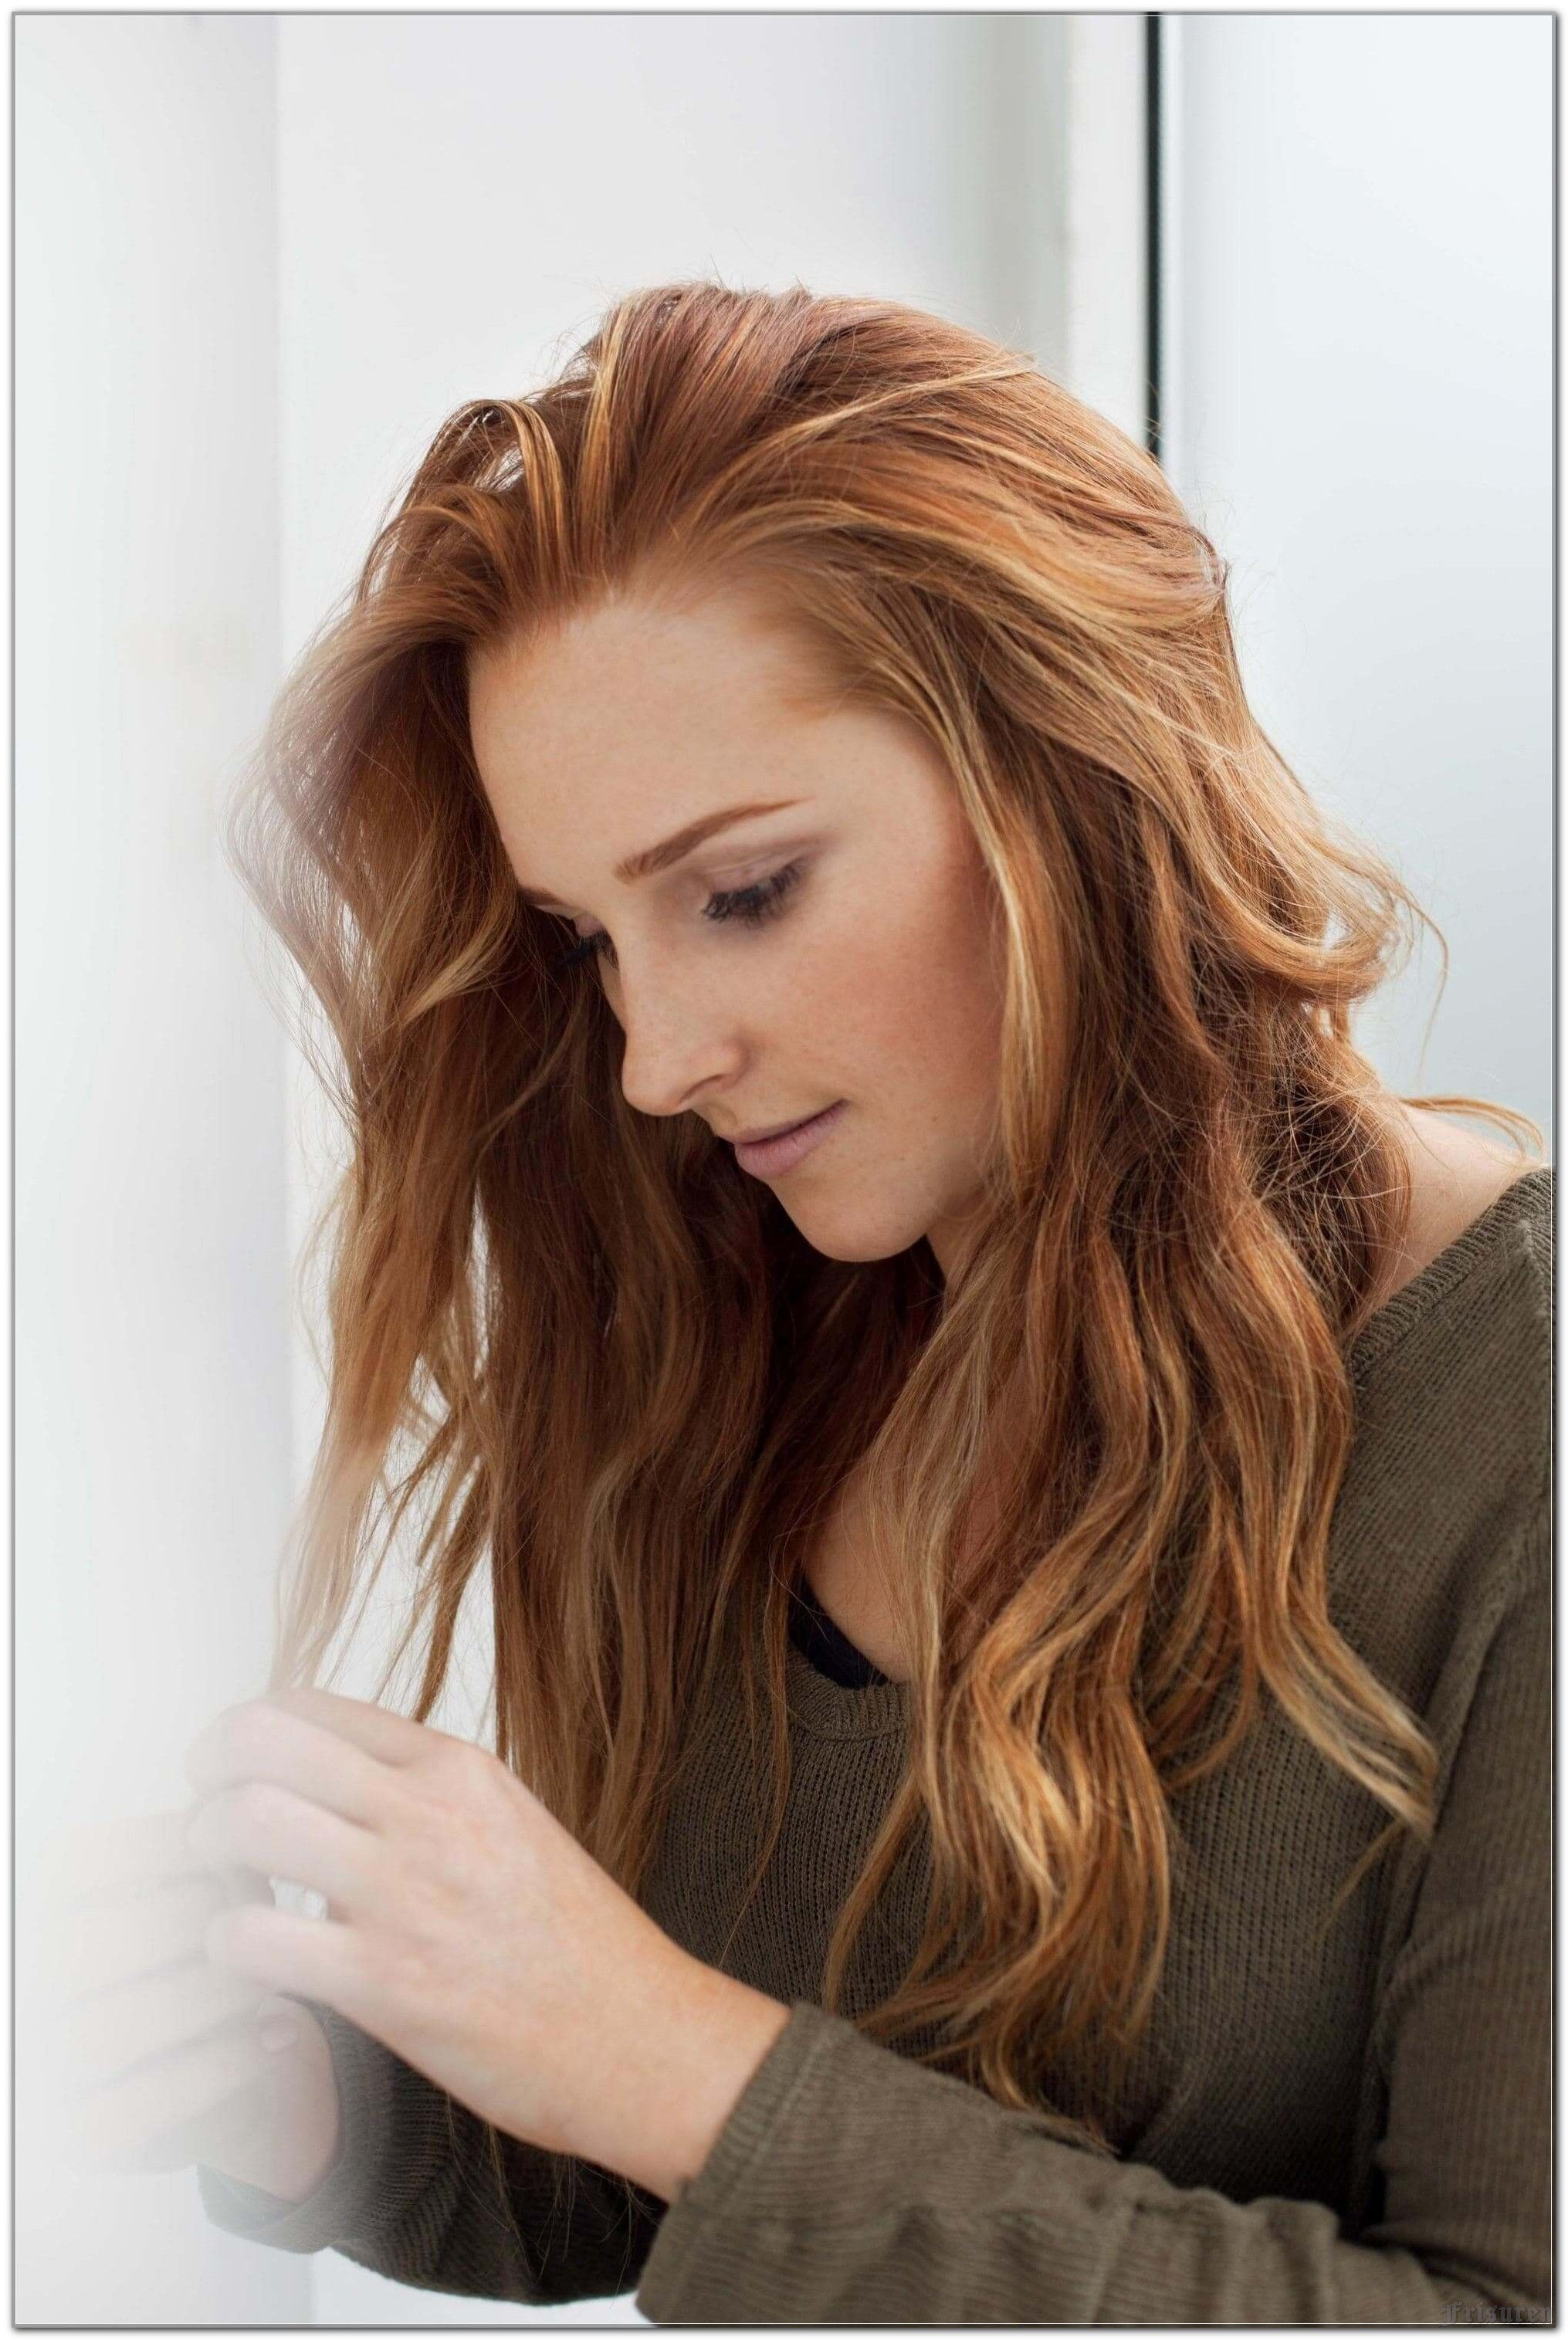 5 Problems Everyone Has With Frisuren – How To Solved Them for 2021